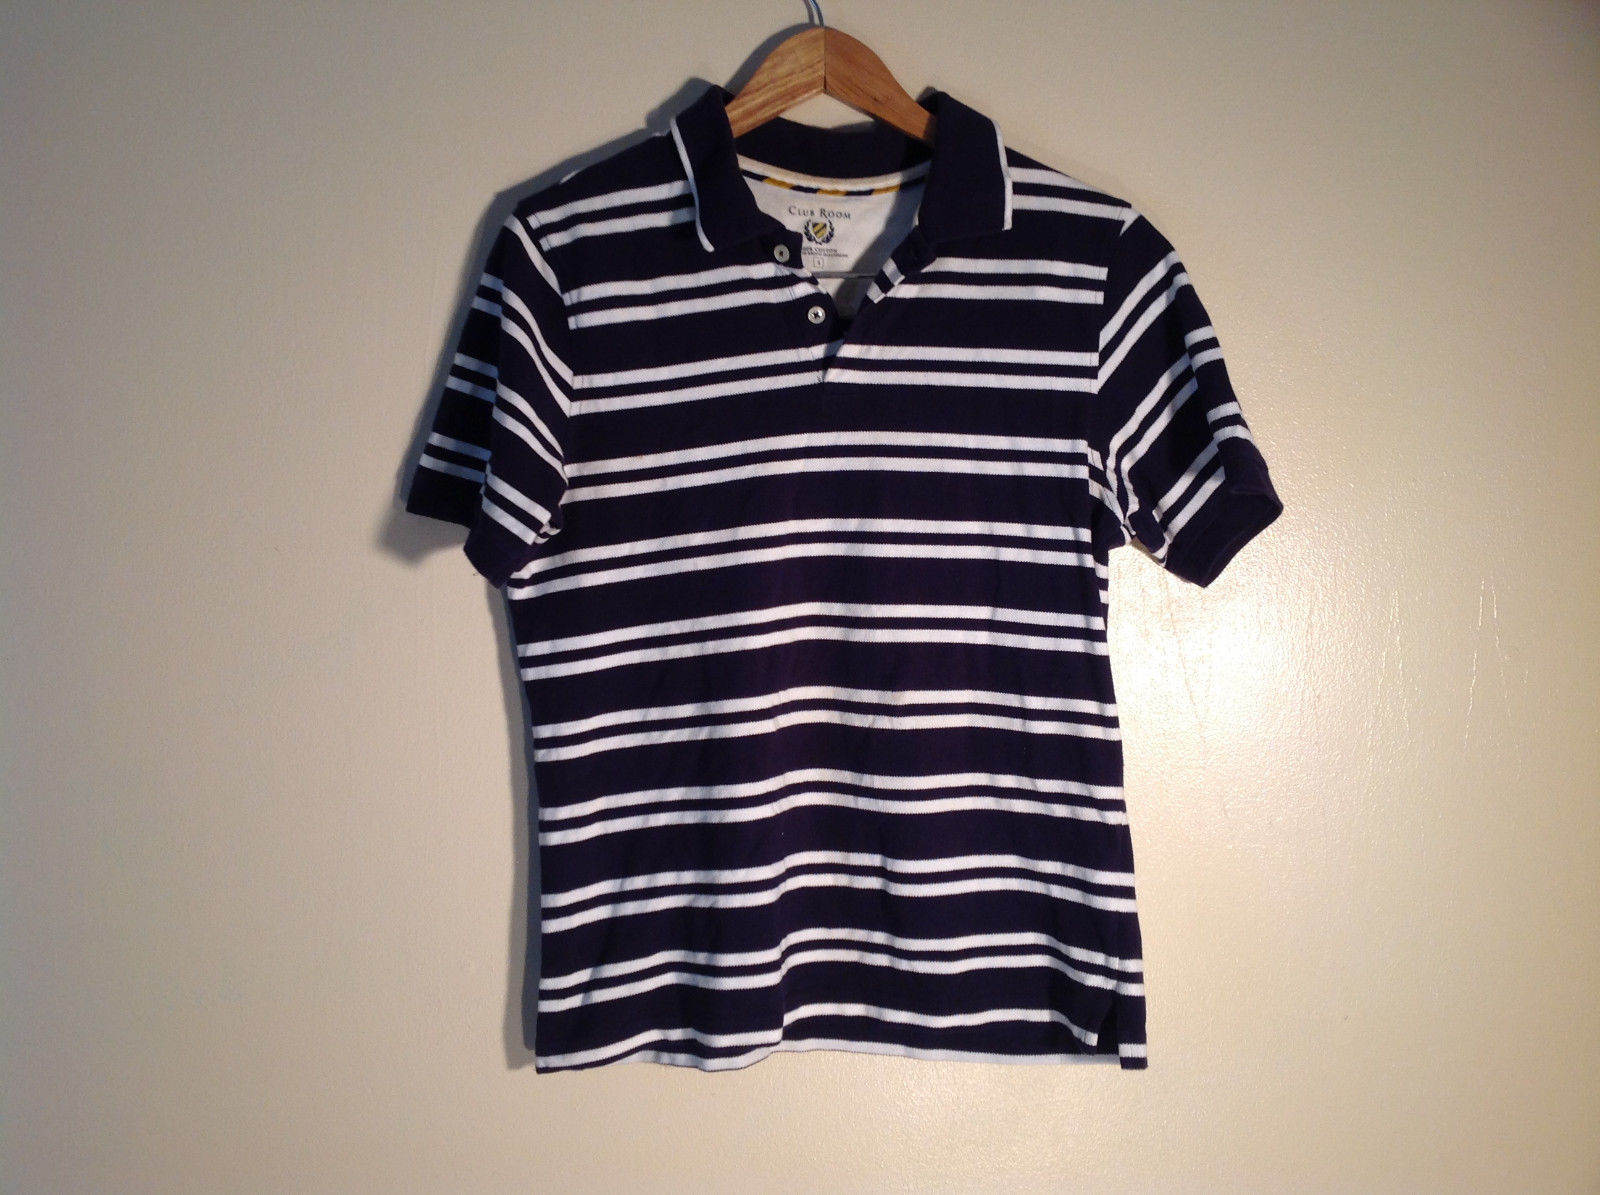 Mens Dark Dark Blue Polo w/ White Stripes Cotton Great Size S Club Room